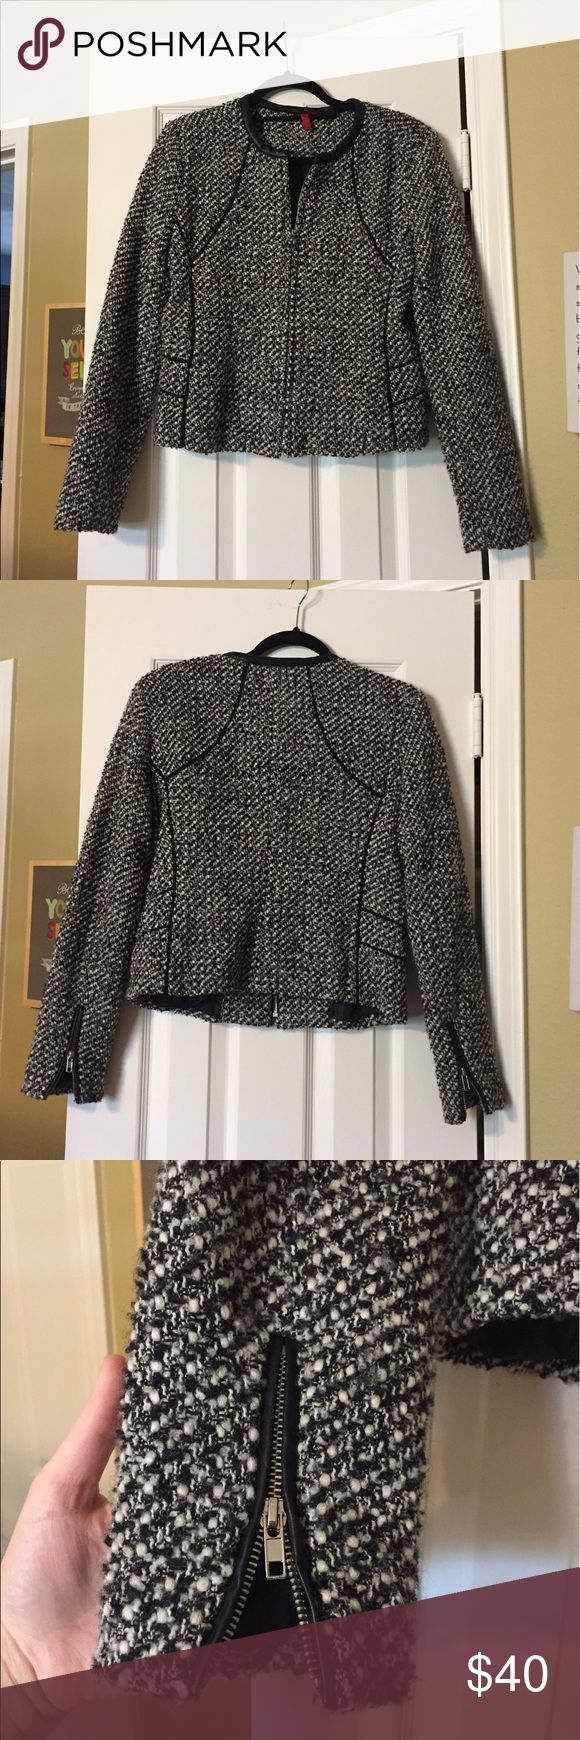 Black & White Zip-Up Nice Jacket Sort of stiff/thick. Faux leather trim. Black and white design. Zips all the way up. Zippers on sleeves. Brand is 548 which I think is a house brand of Saks Off? Saks Fifth Avenue Jackets & Coats